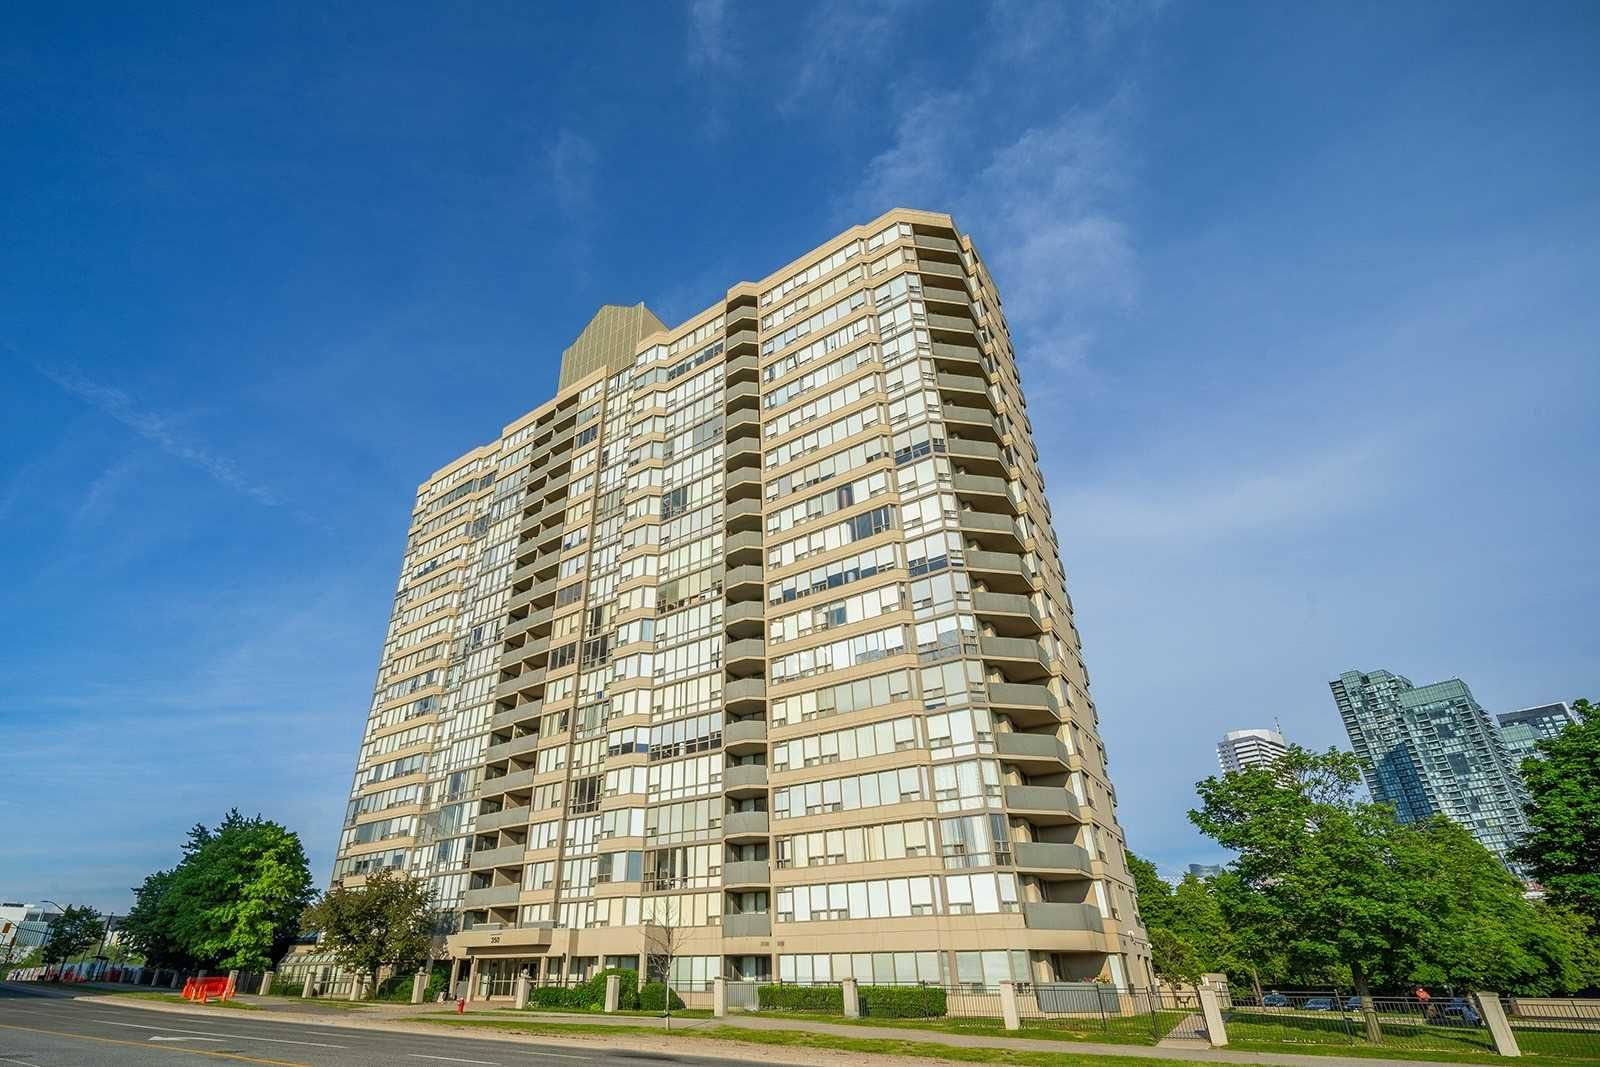 350 Rathburn Rd, unit 304 for sale in Toronto - image #1